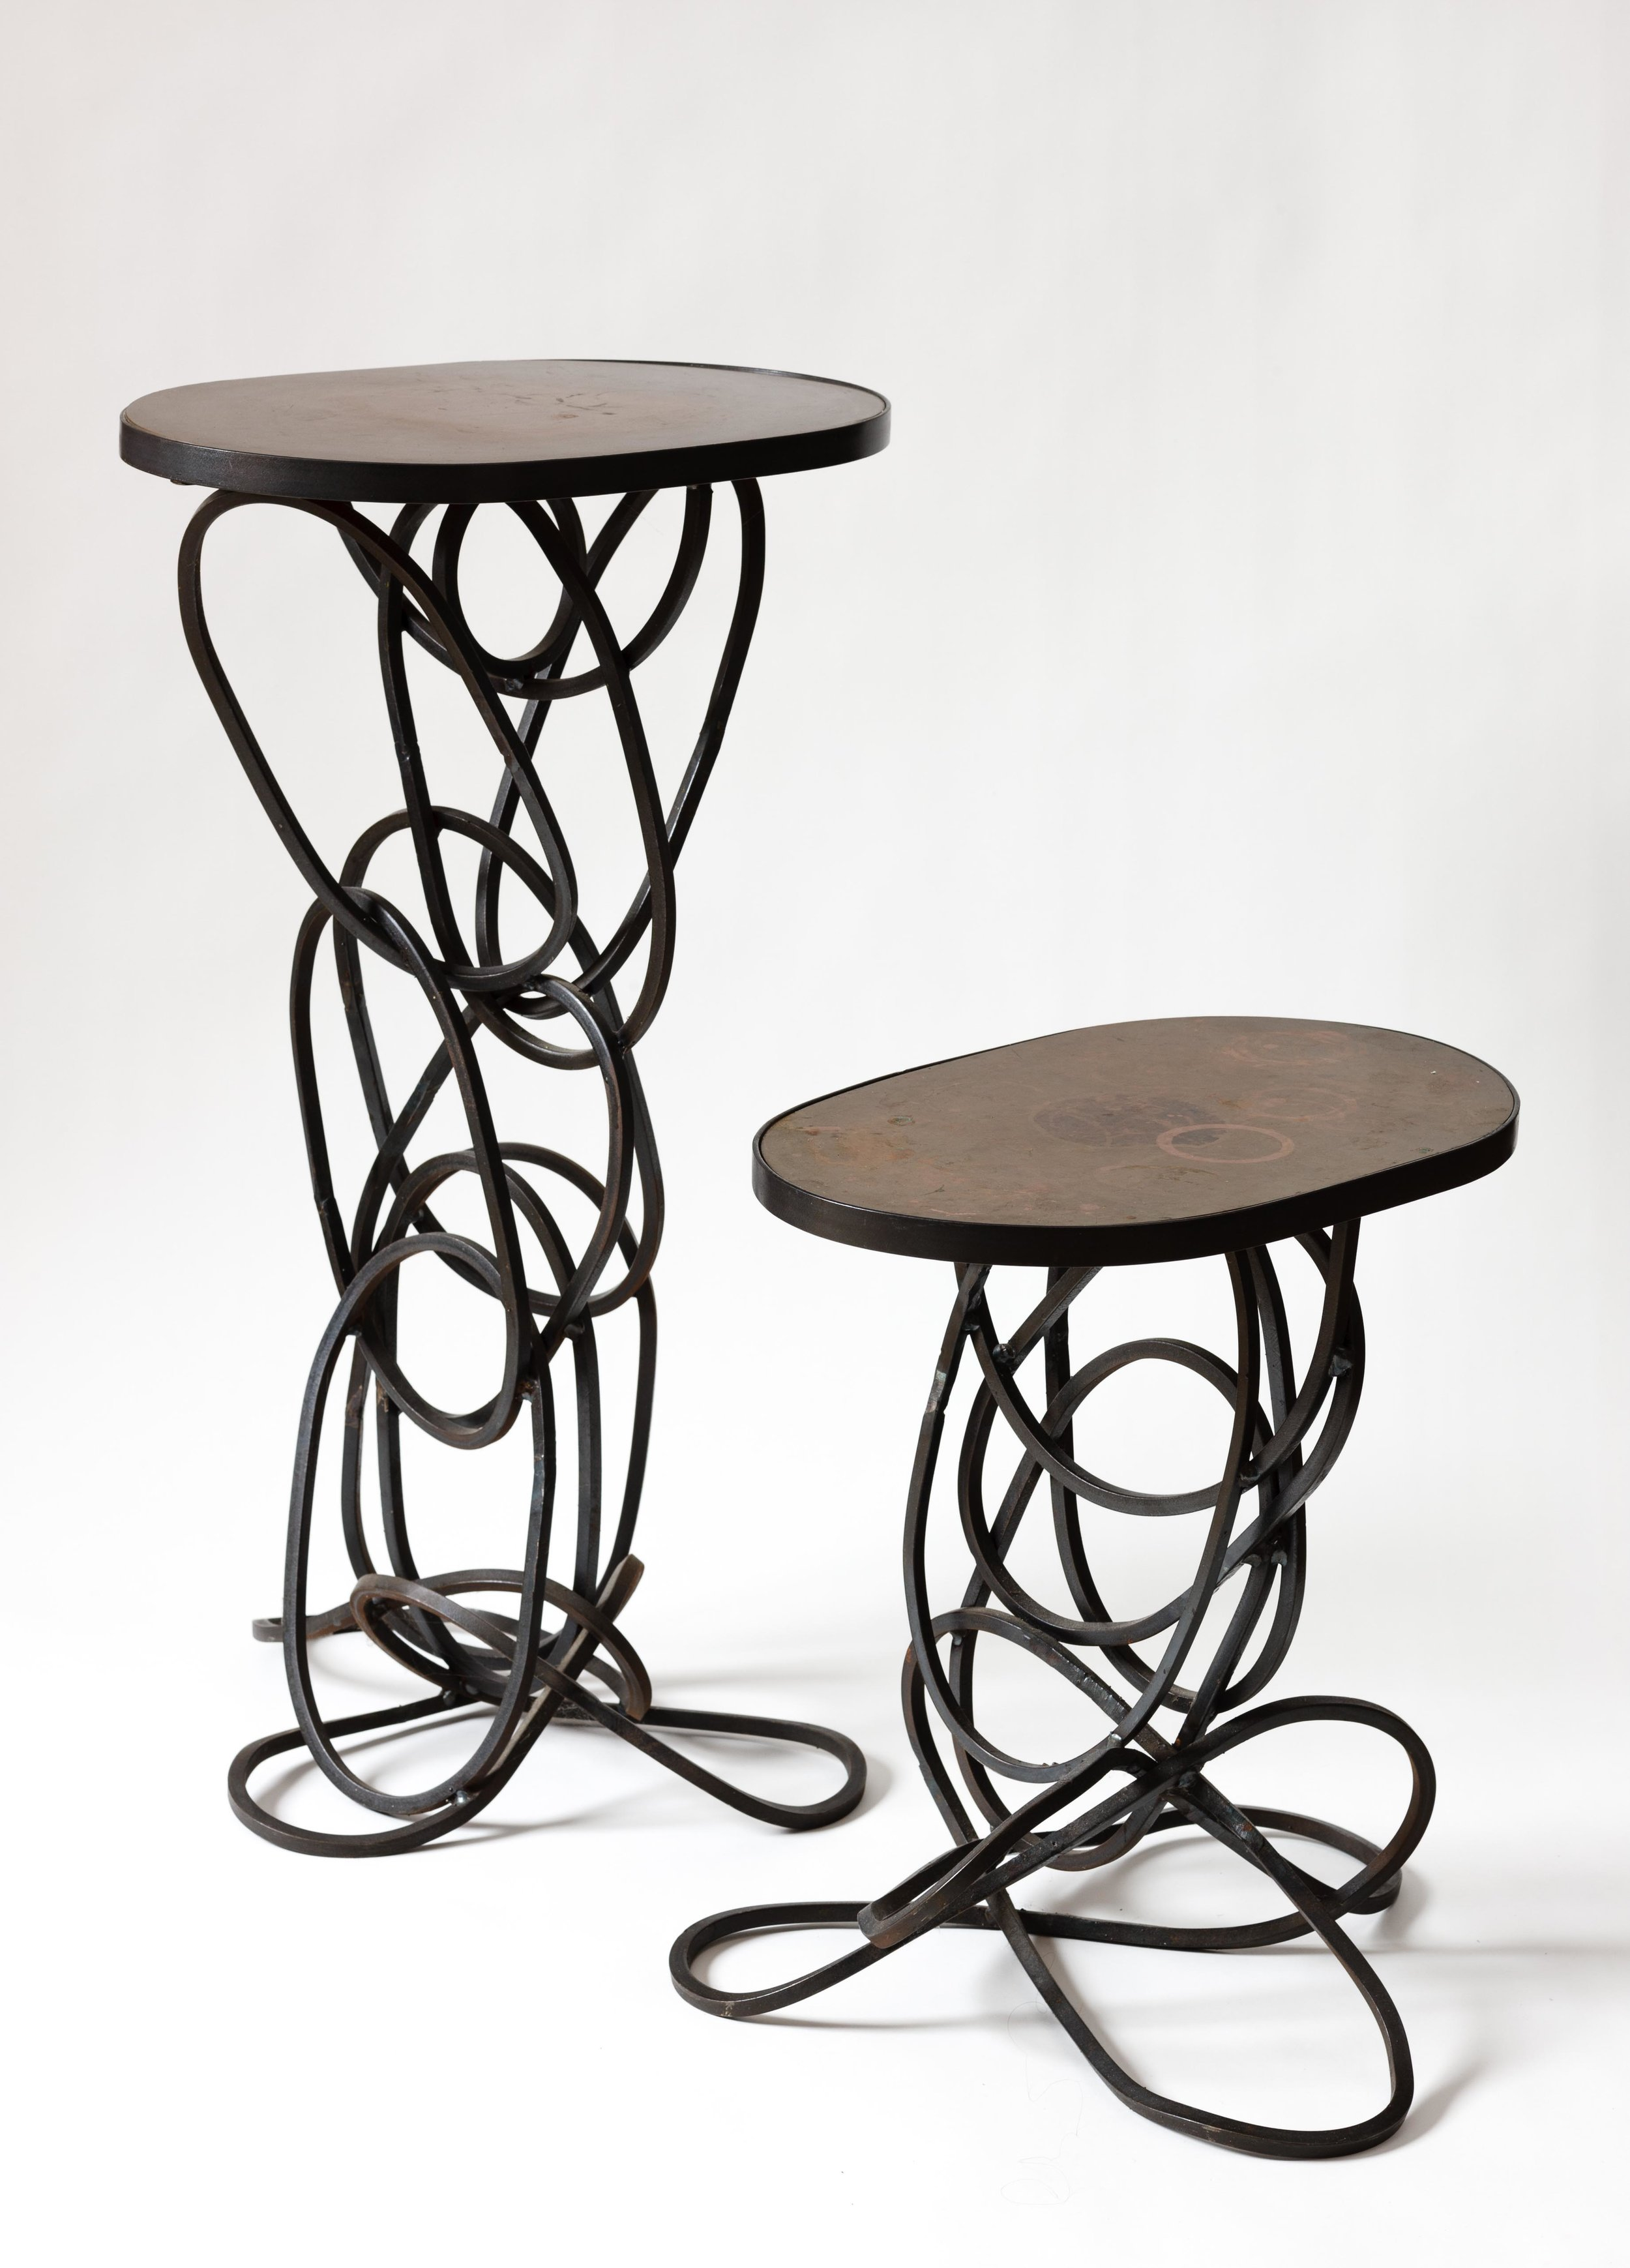 Loop Table with bronze patina top